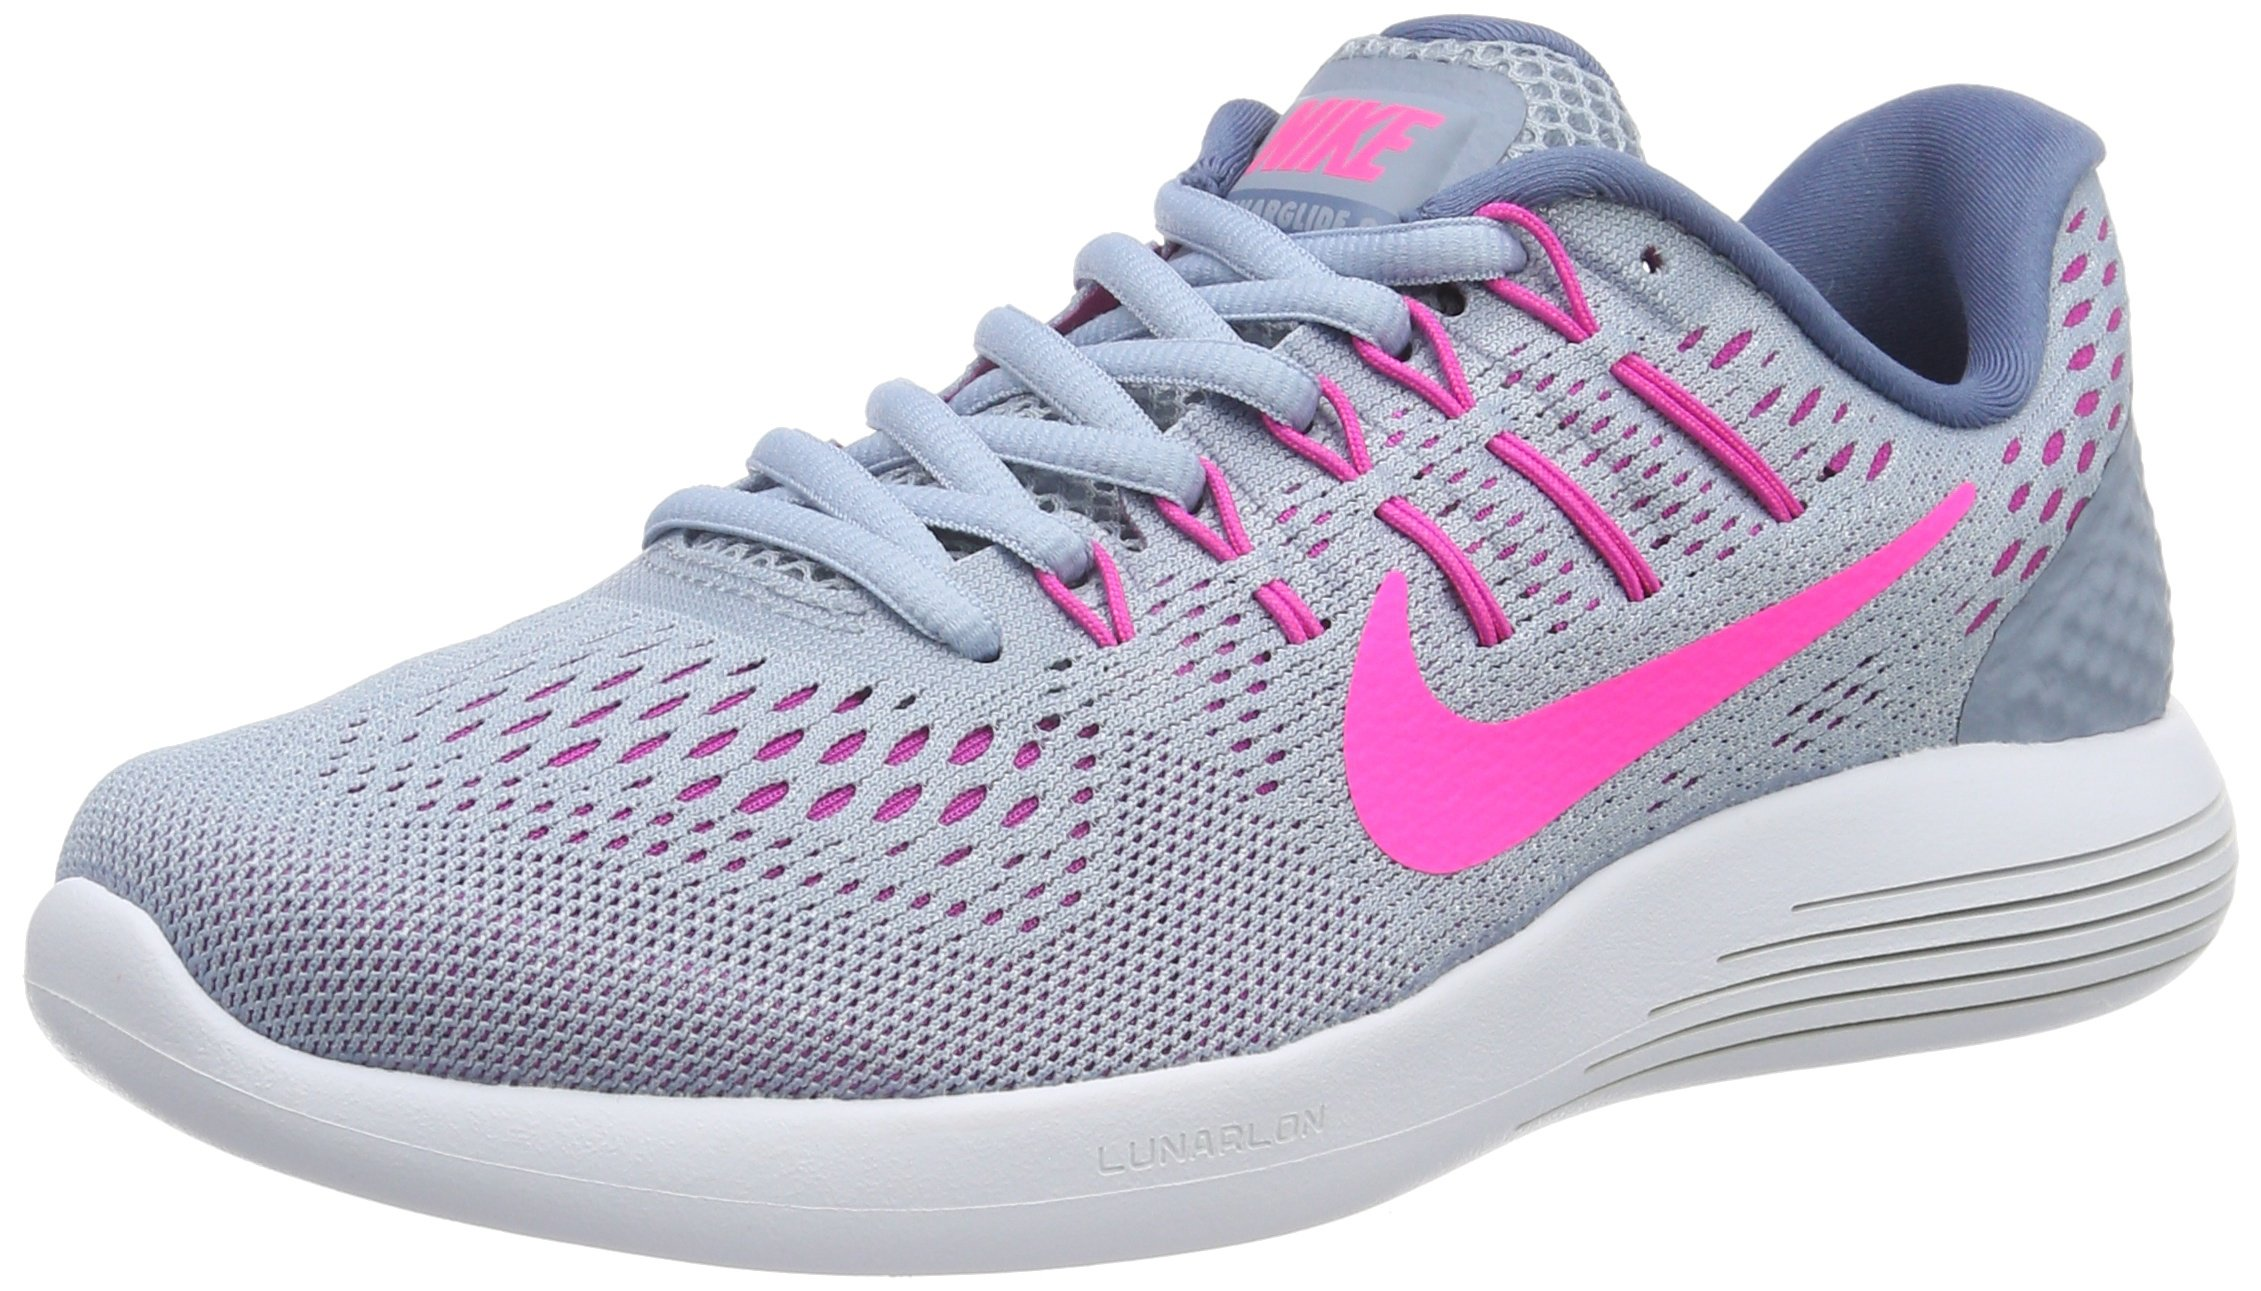 promo code b98de 3d663 Galleon - Nike Lunarglide 8 Women s Running Shoes - SU16-7.5 - Grey